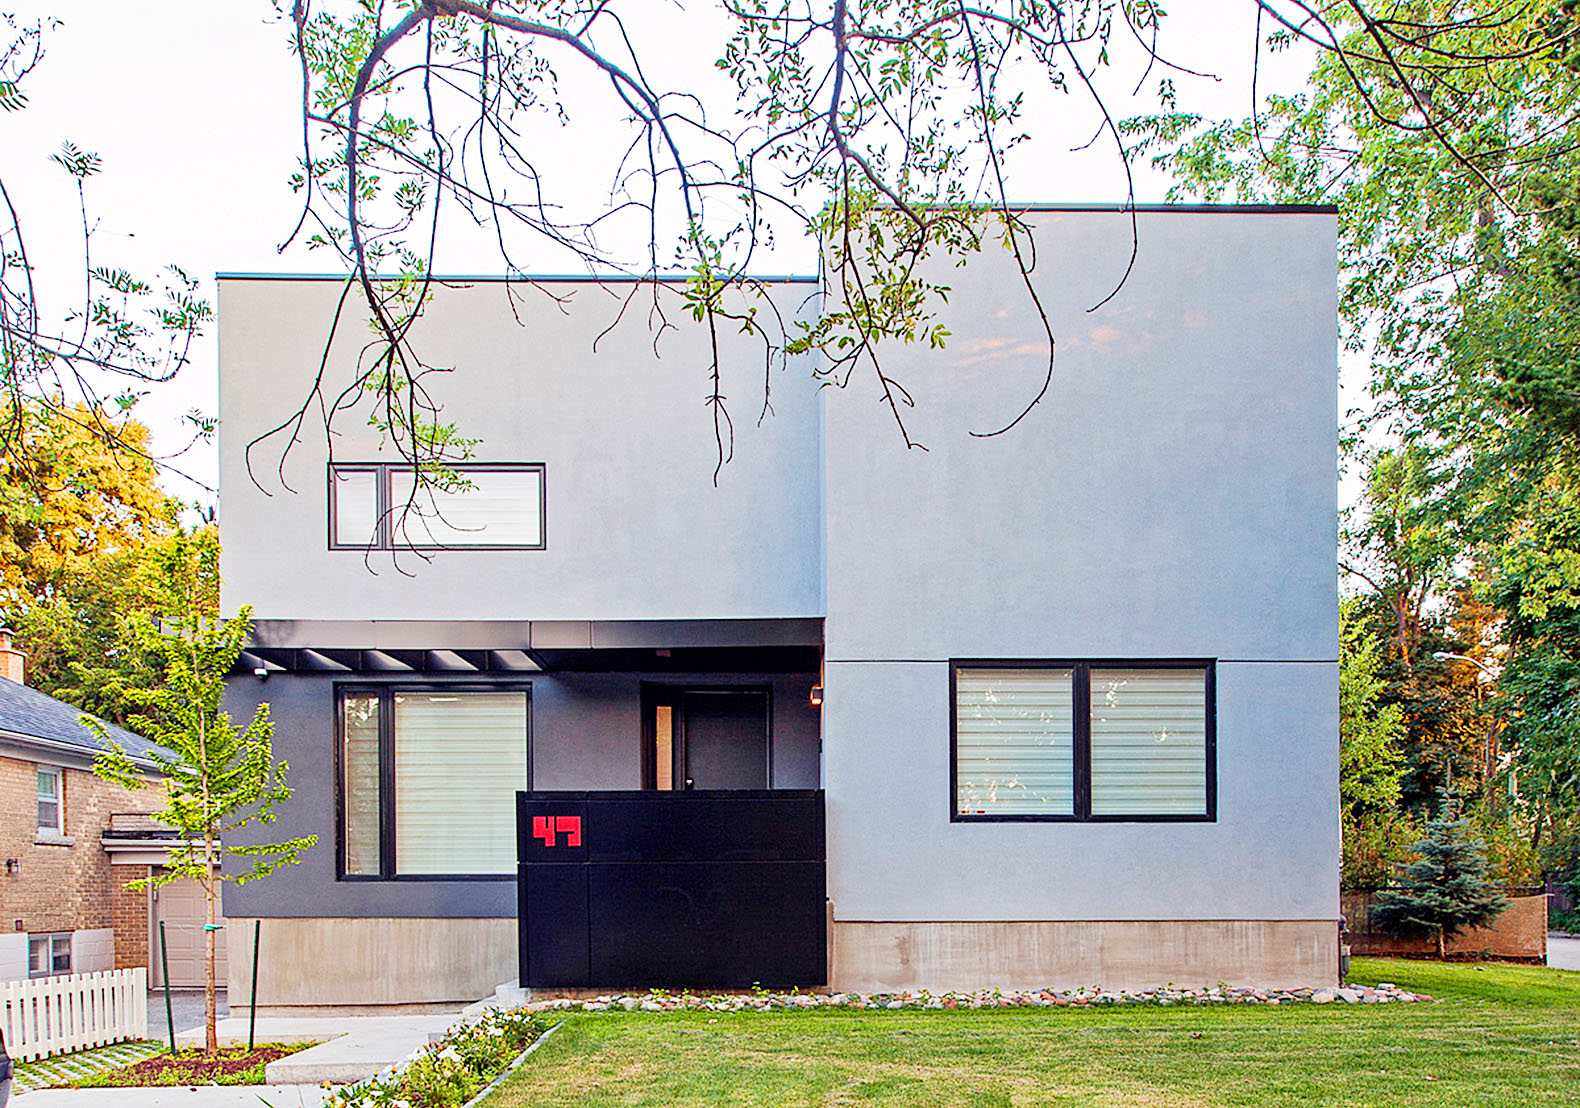 Minimalist Thorax House in Toronto was inspired by human bones, skin and organs